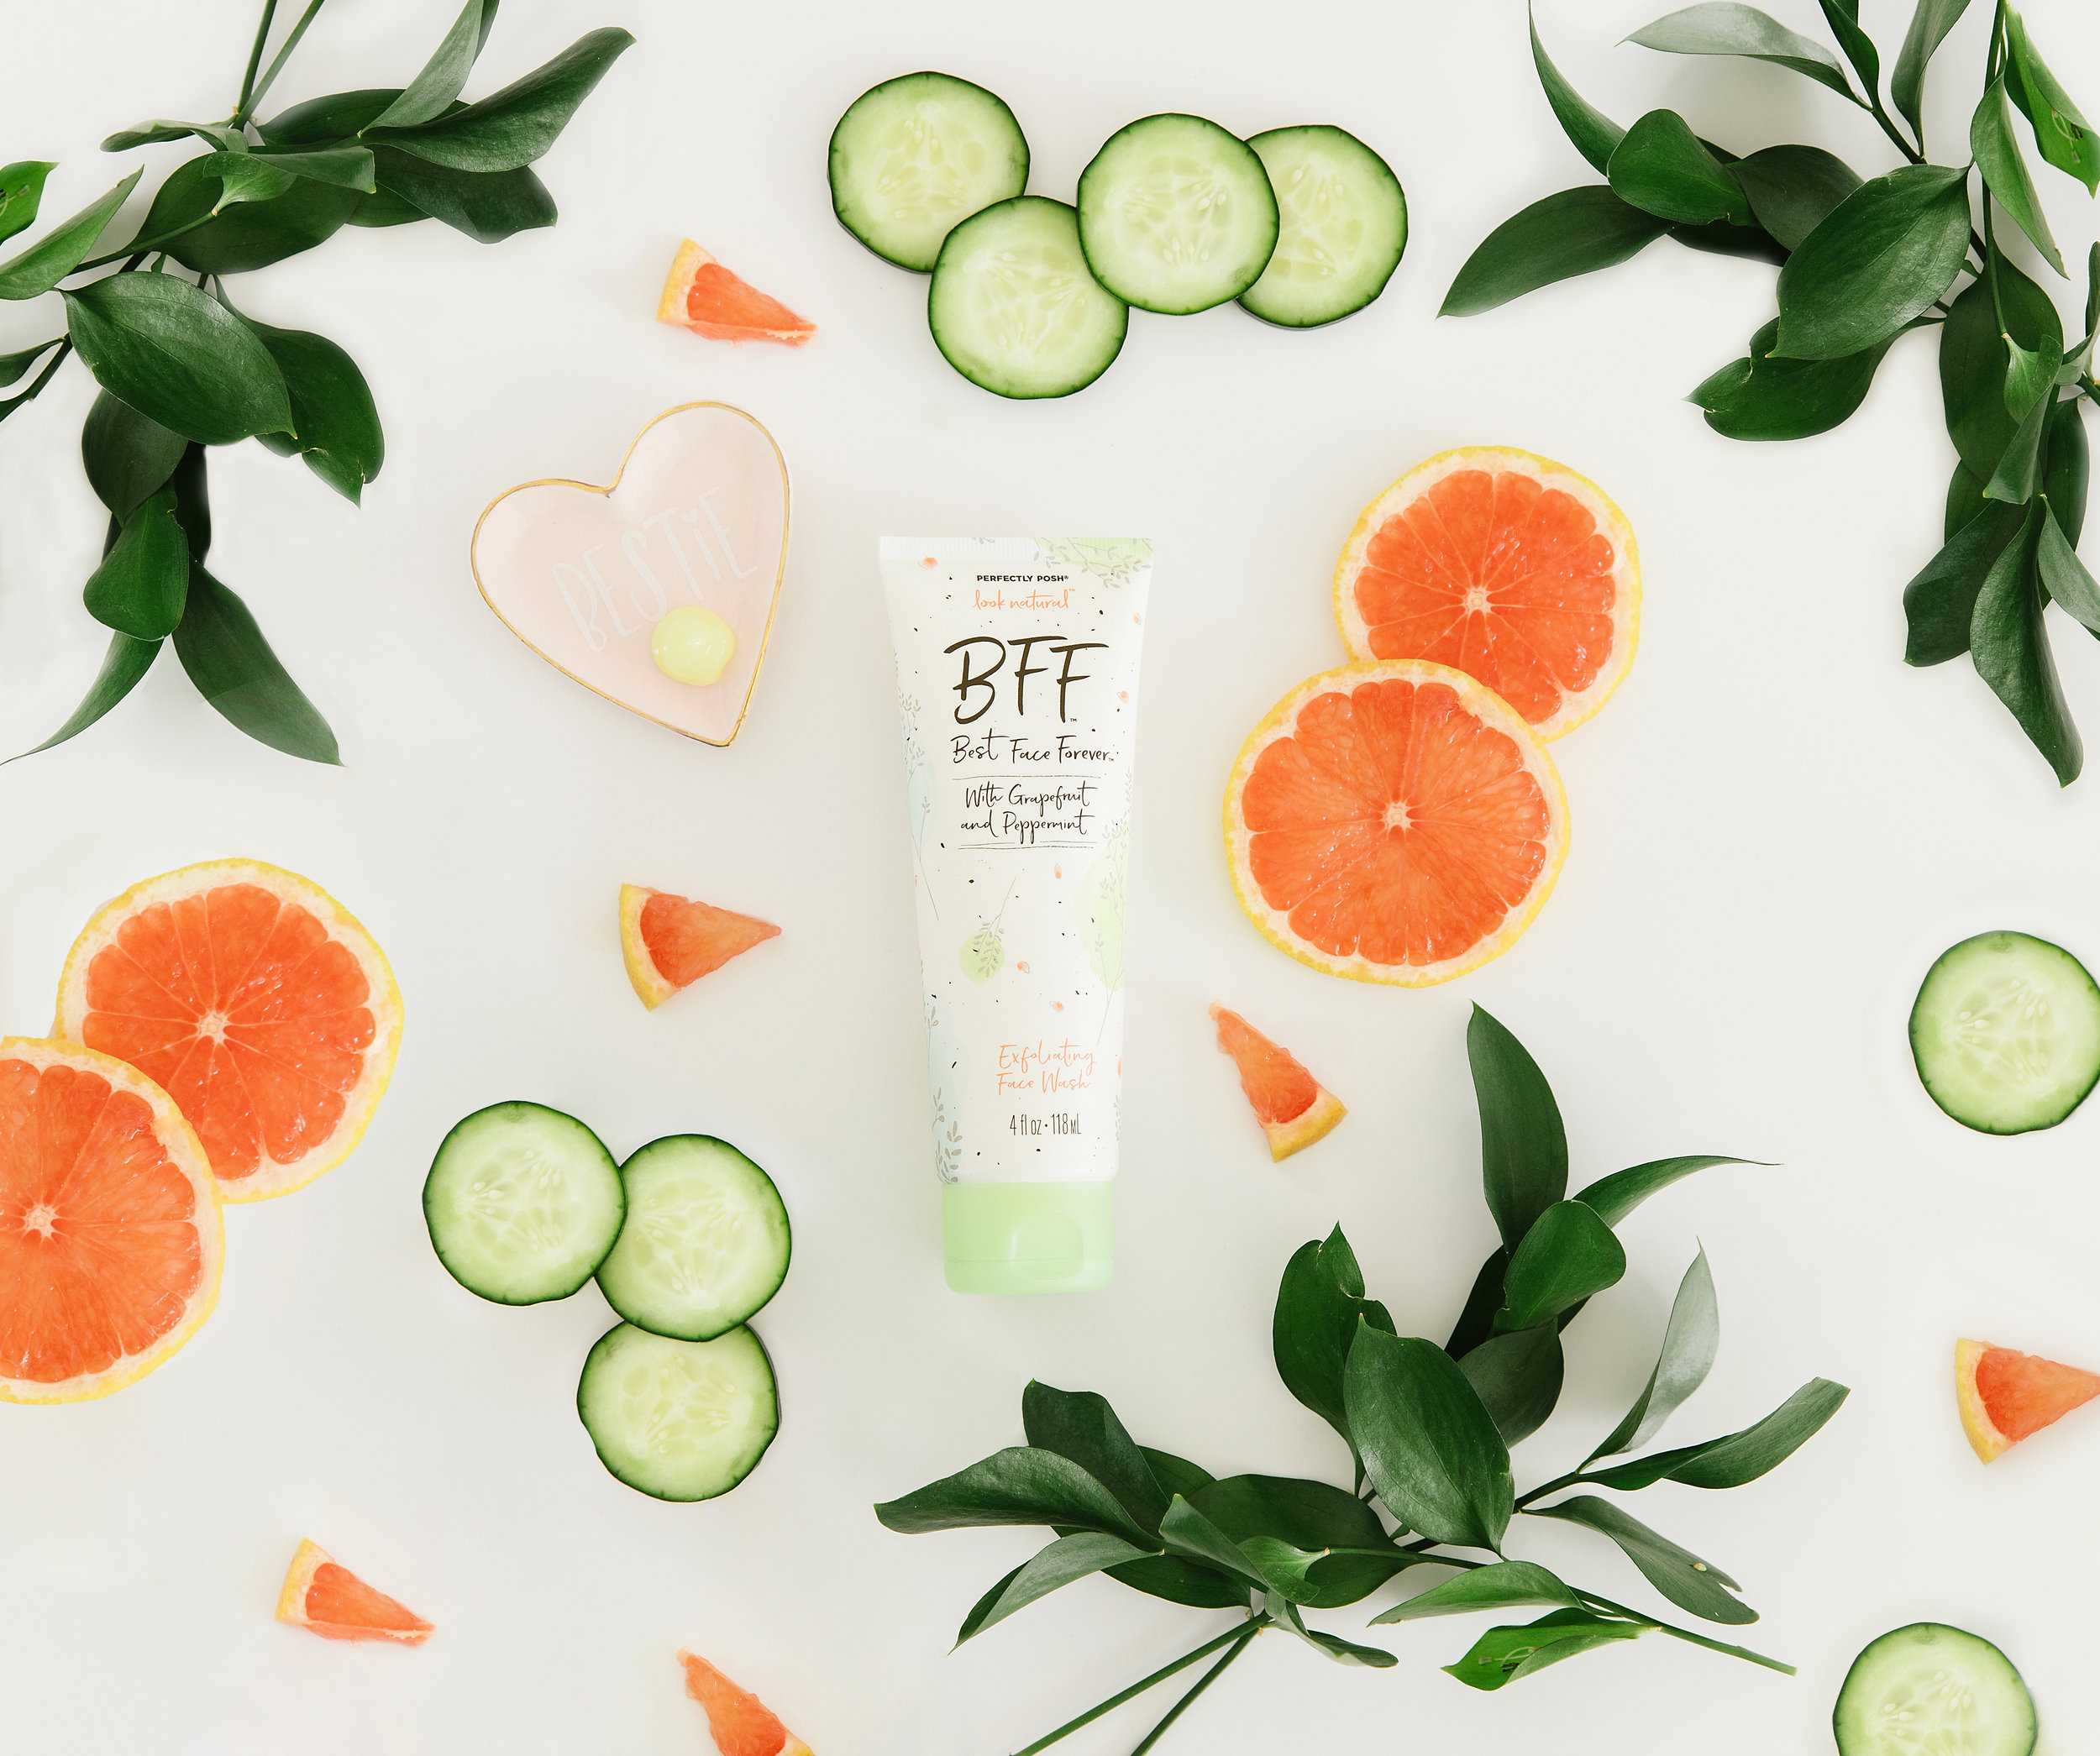 Perfectly Posh BFF: Best Face Forever Face Wash styled with grapefruit and cucumber, naturally based exfoliating face cleanser with all vegan ingredients and grapefruit and peppermint essential oils